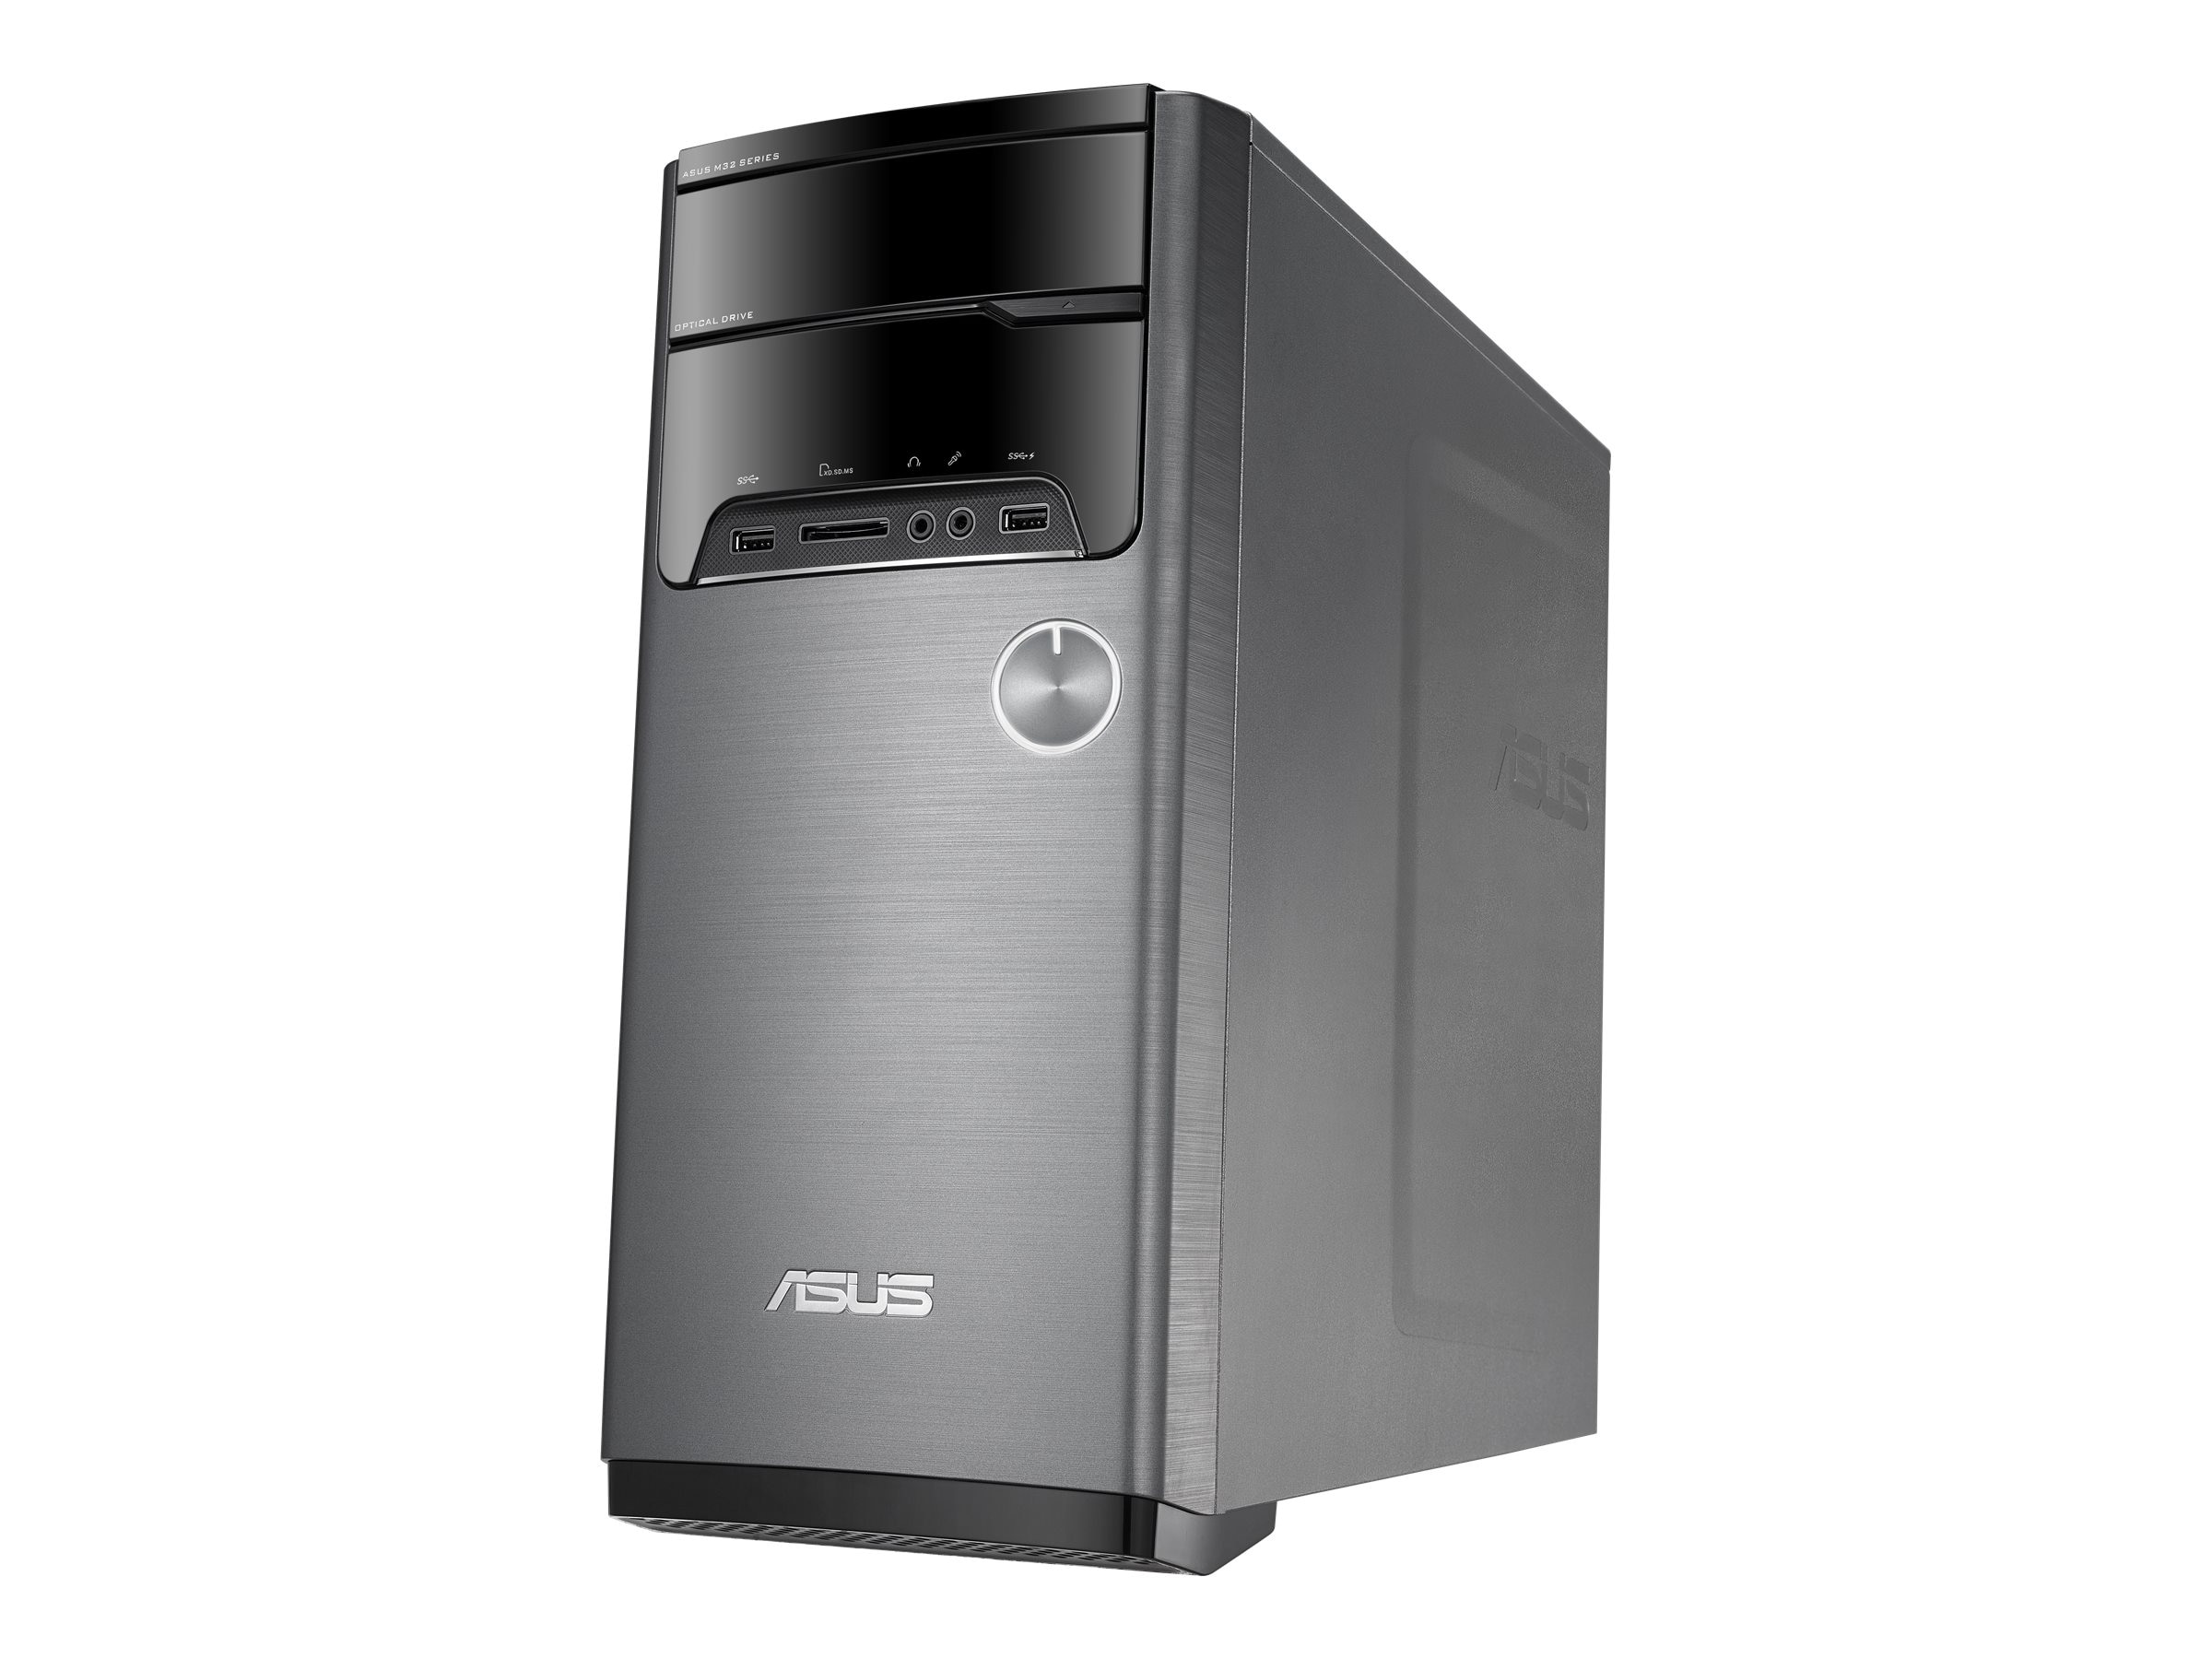 Asus Desktop PC AMD A10-7800 16GB 3TB, M32BF-US011S, 17793836, Desktops